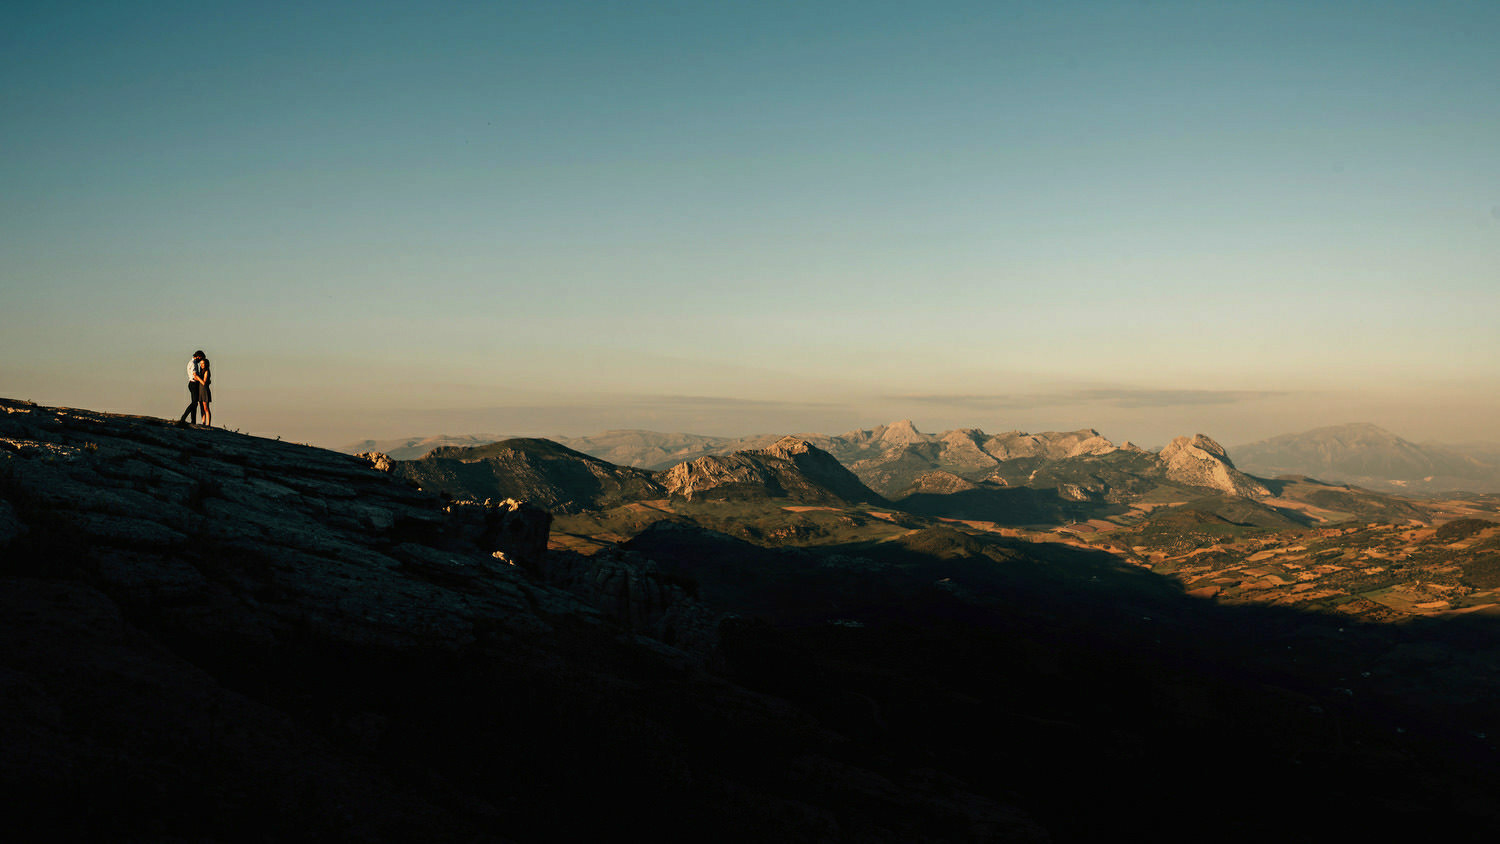 At the peak of the Torcal Mountains in Southern Spain.